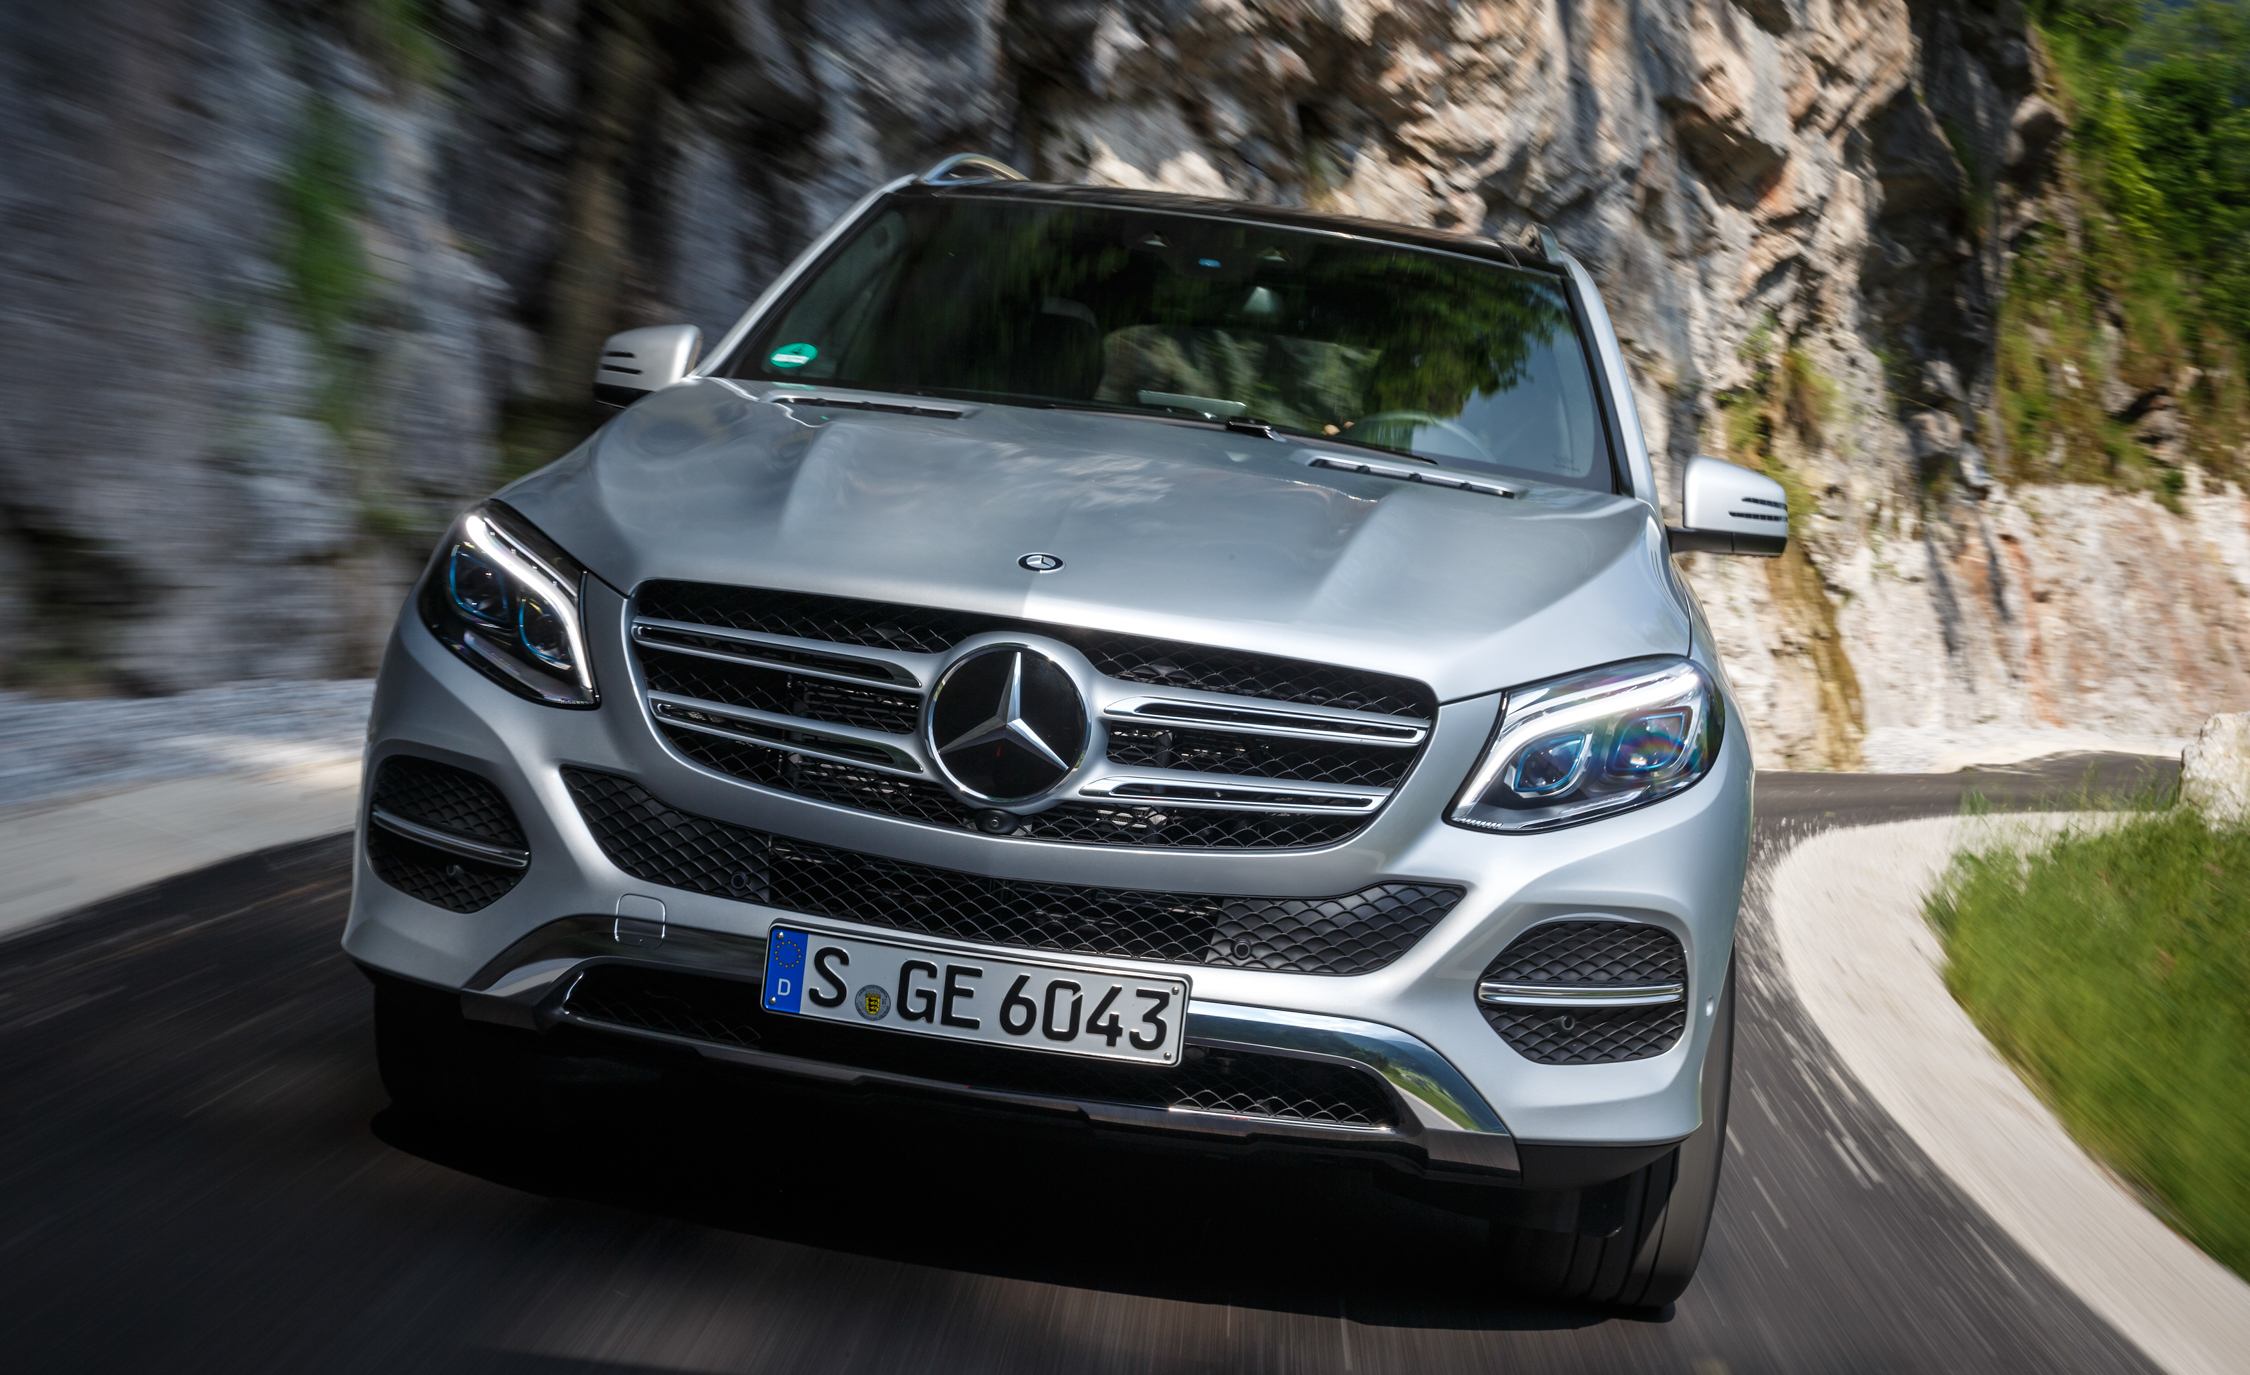 2016 Mercedes Benz GLE500e 4MATIC (View 37 of 43)